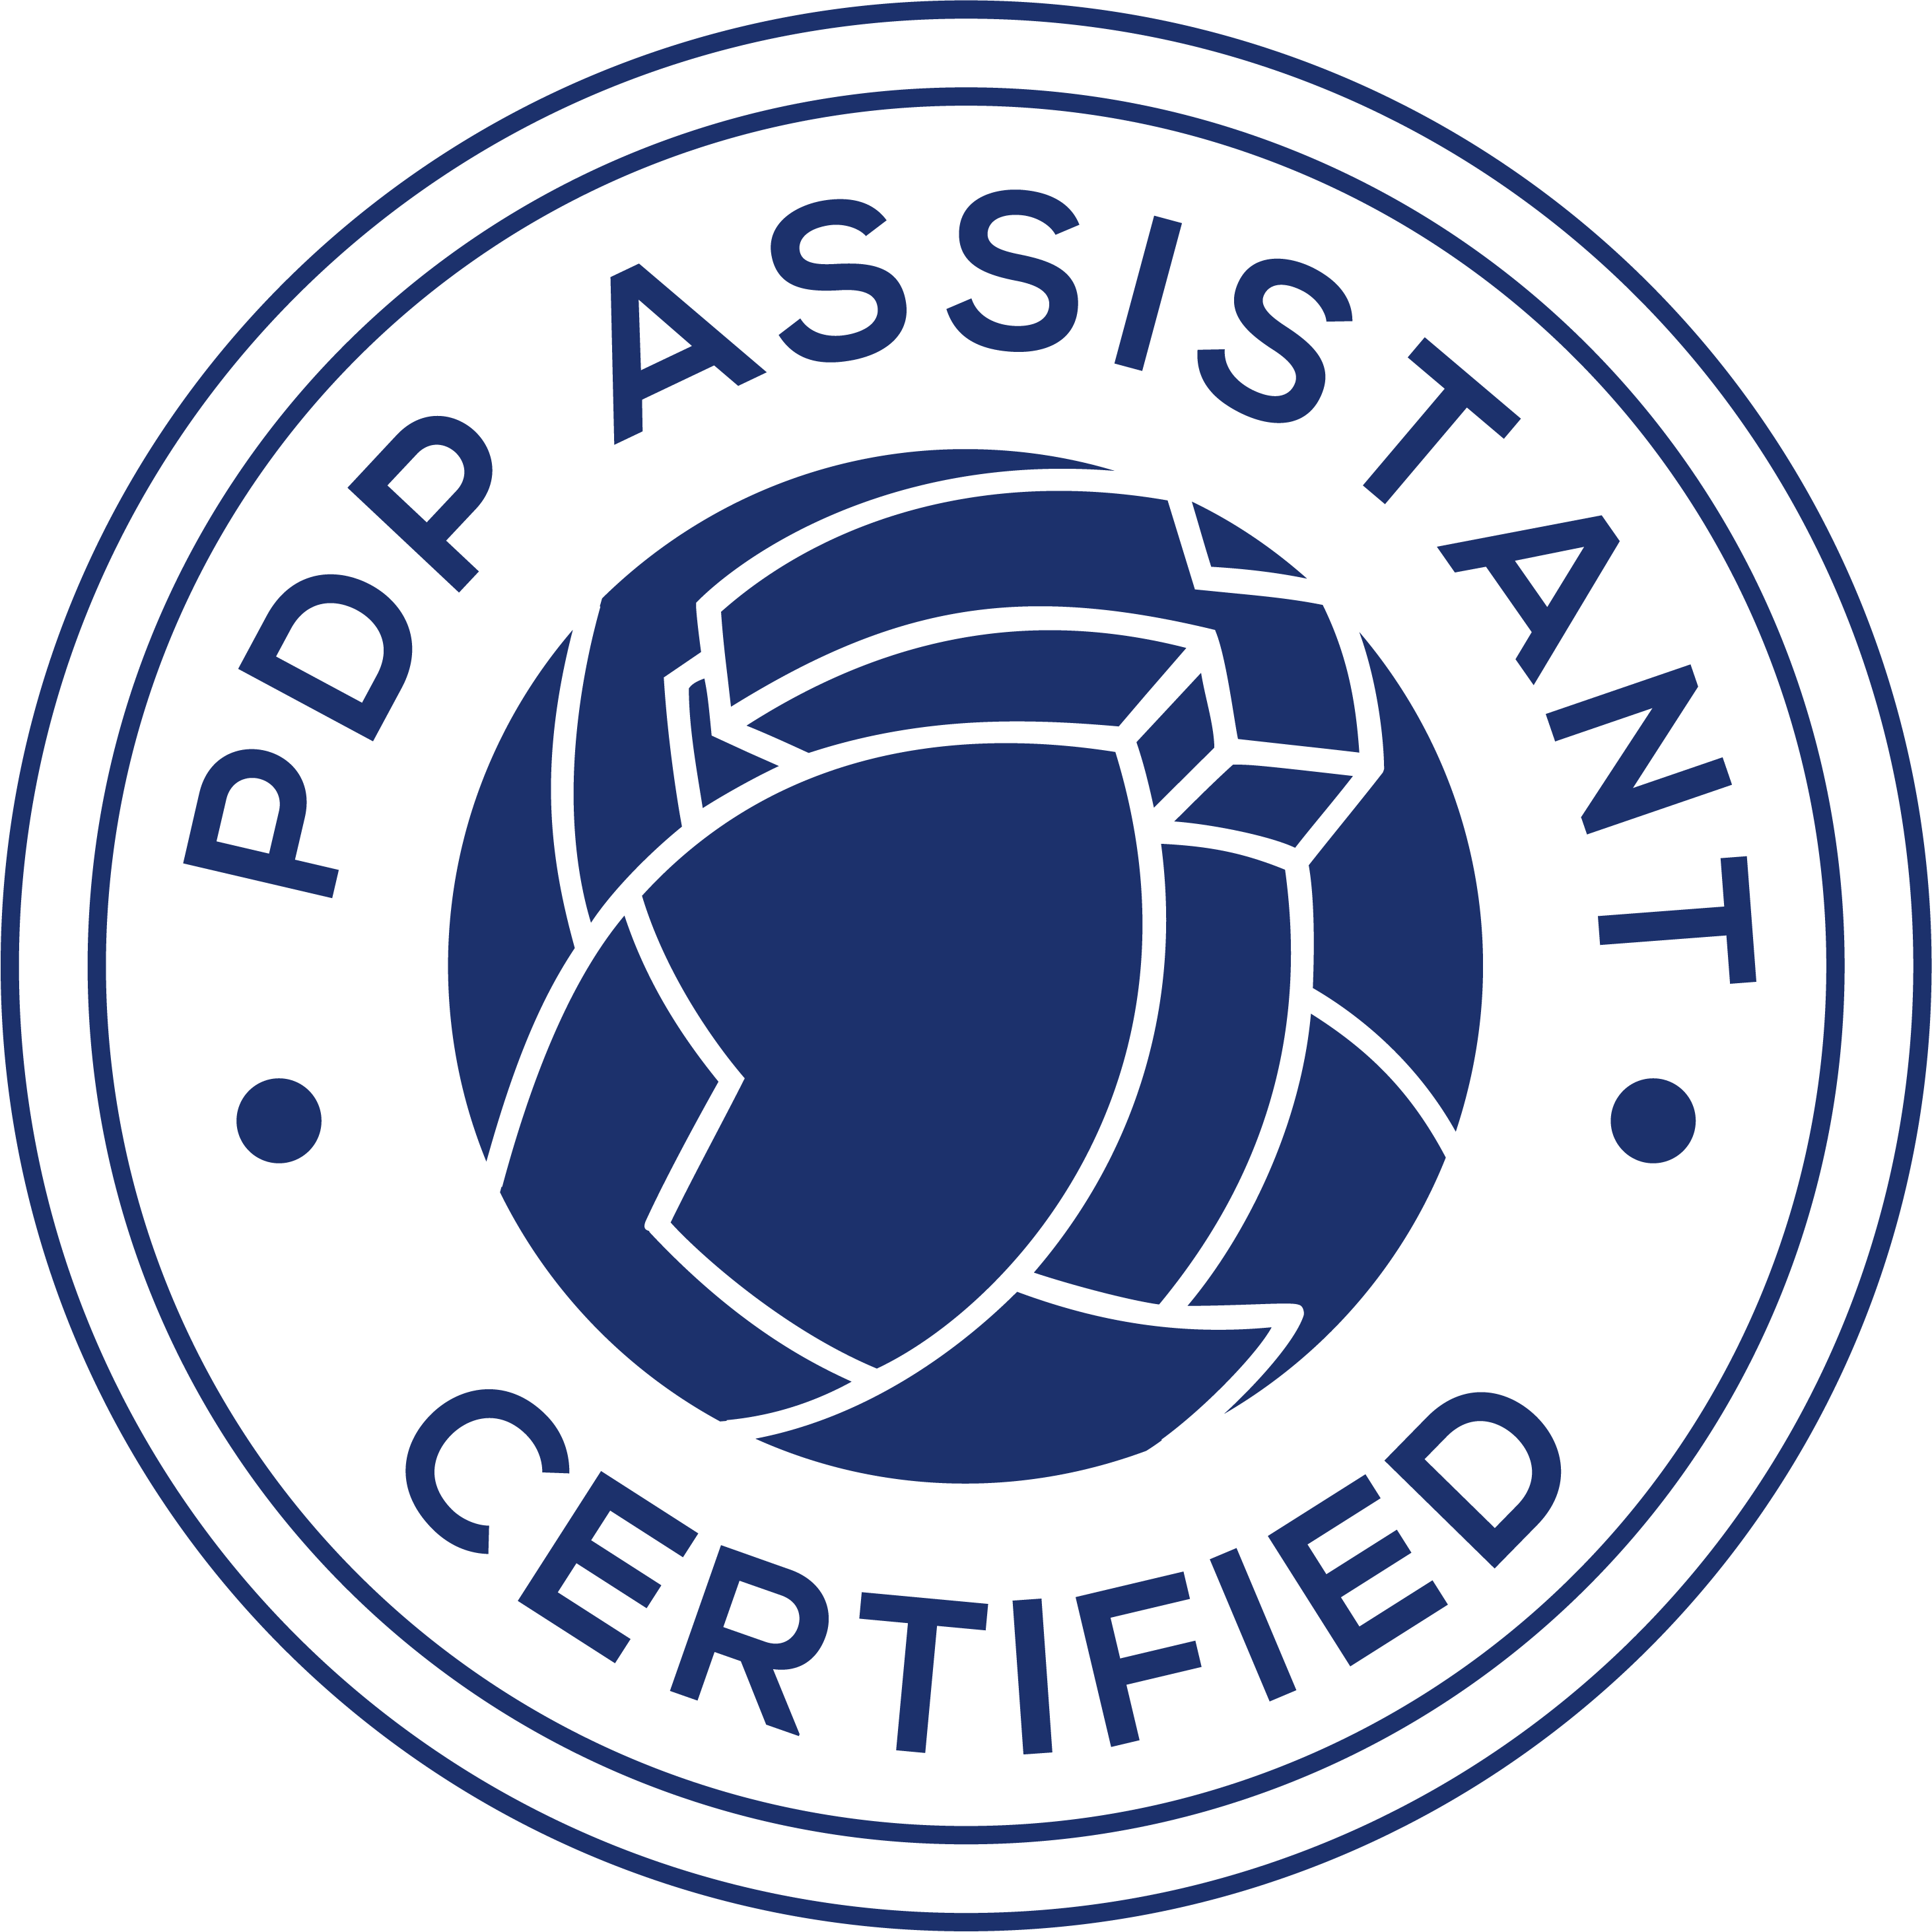 PDP Assistant Badge